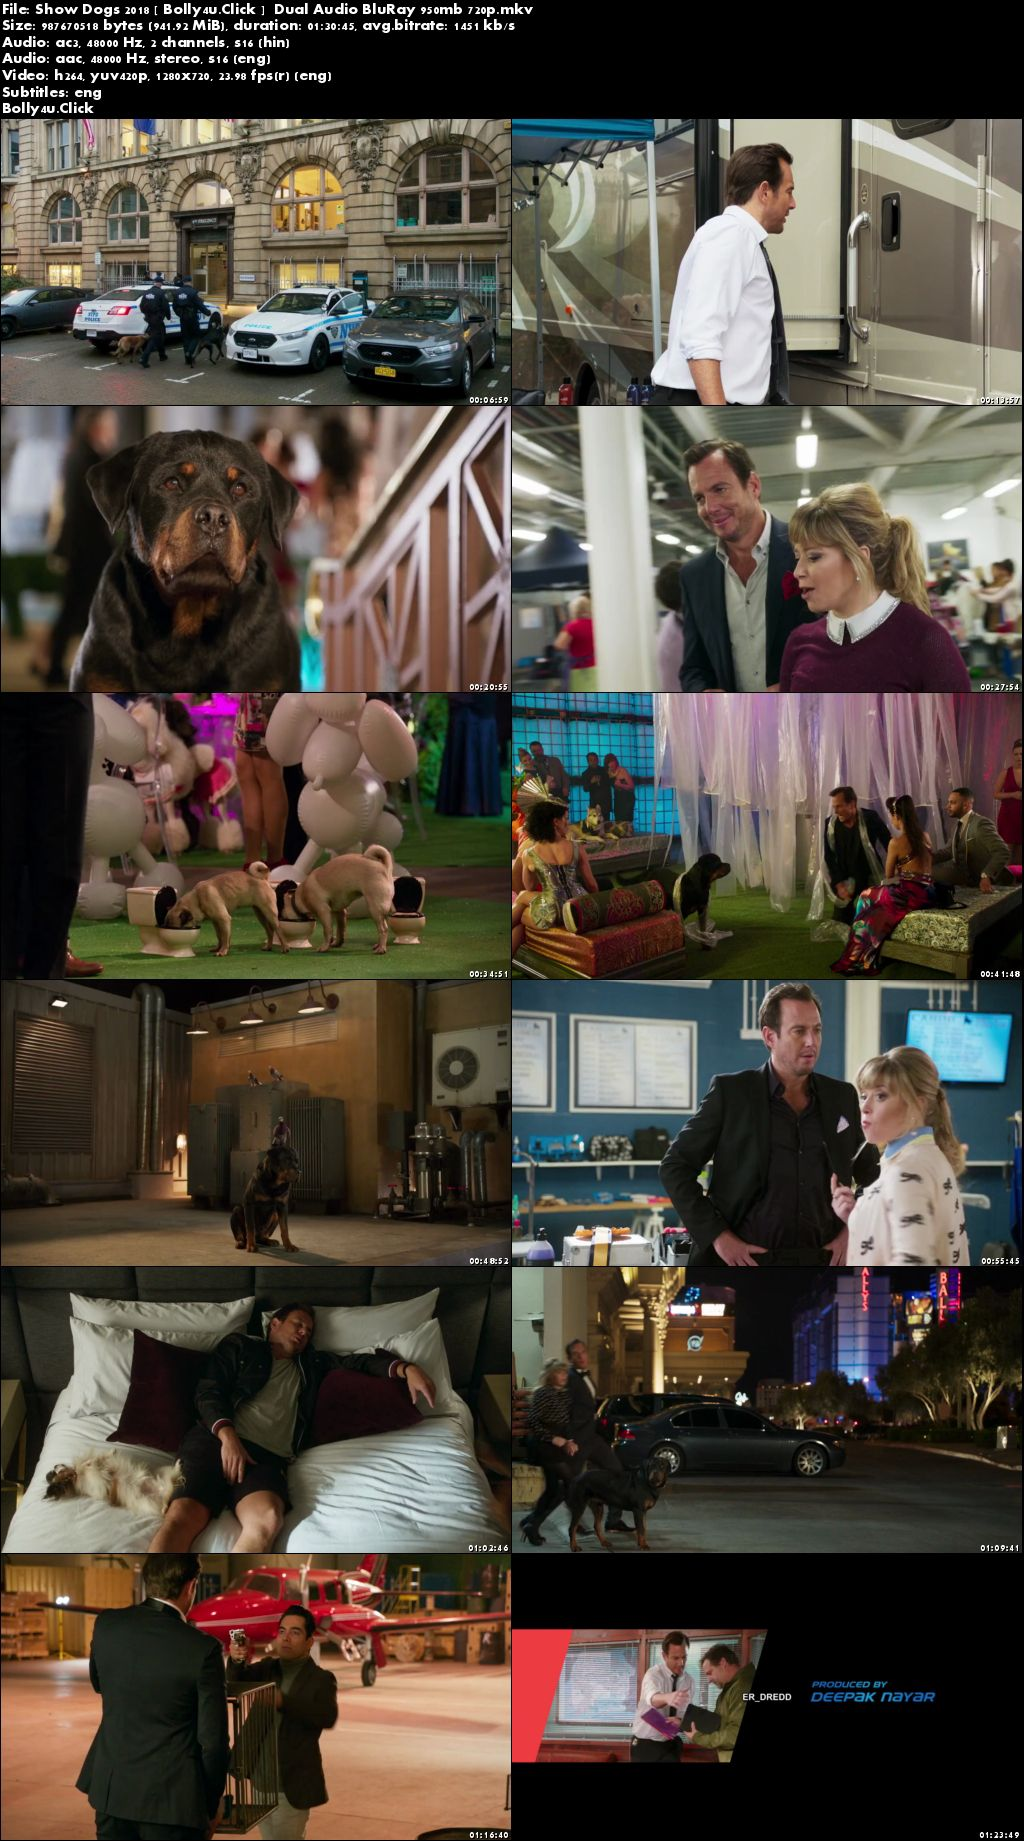 Show Dogs 2018 BluRay 950Mb Hindi Dual Audio 720p Download